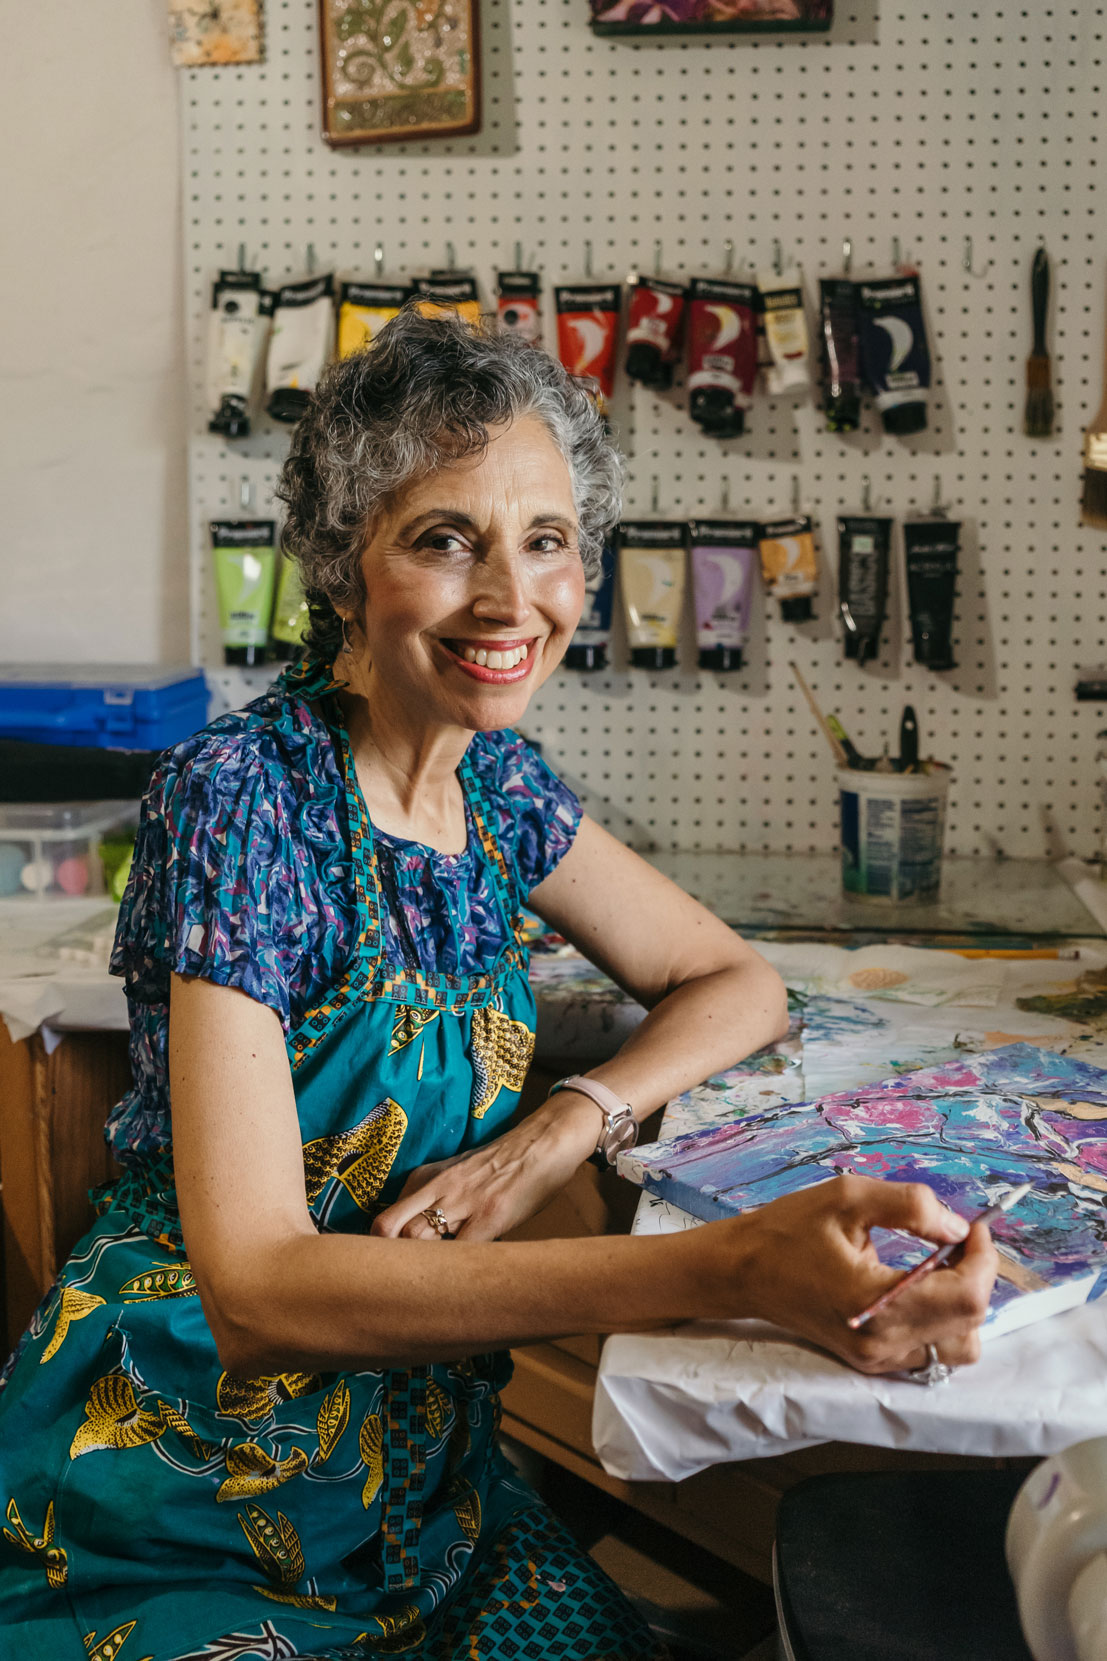 Painter Deborah Nell sits in her home studio in East Berlin, PA. Deborah's art features colorful pours and abstract figures.